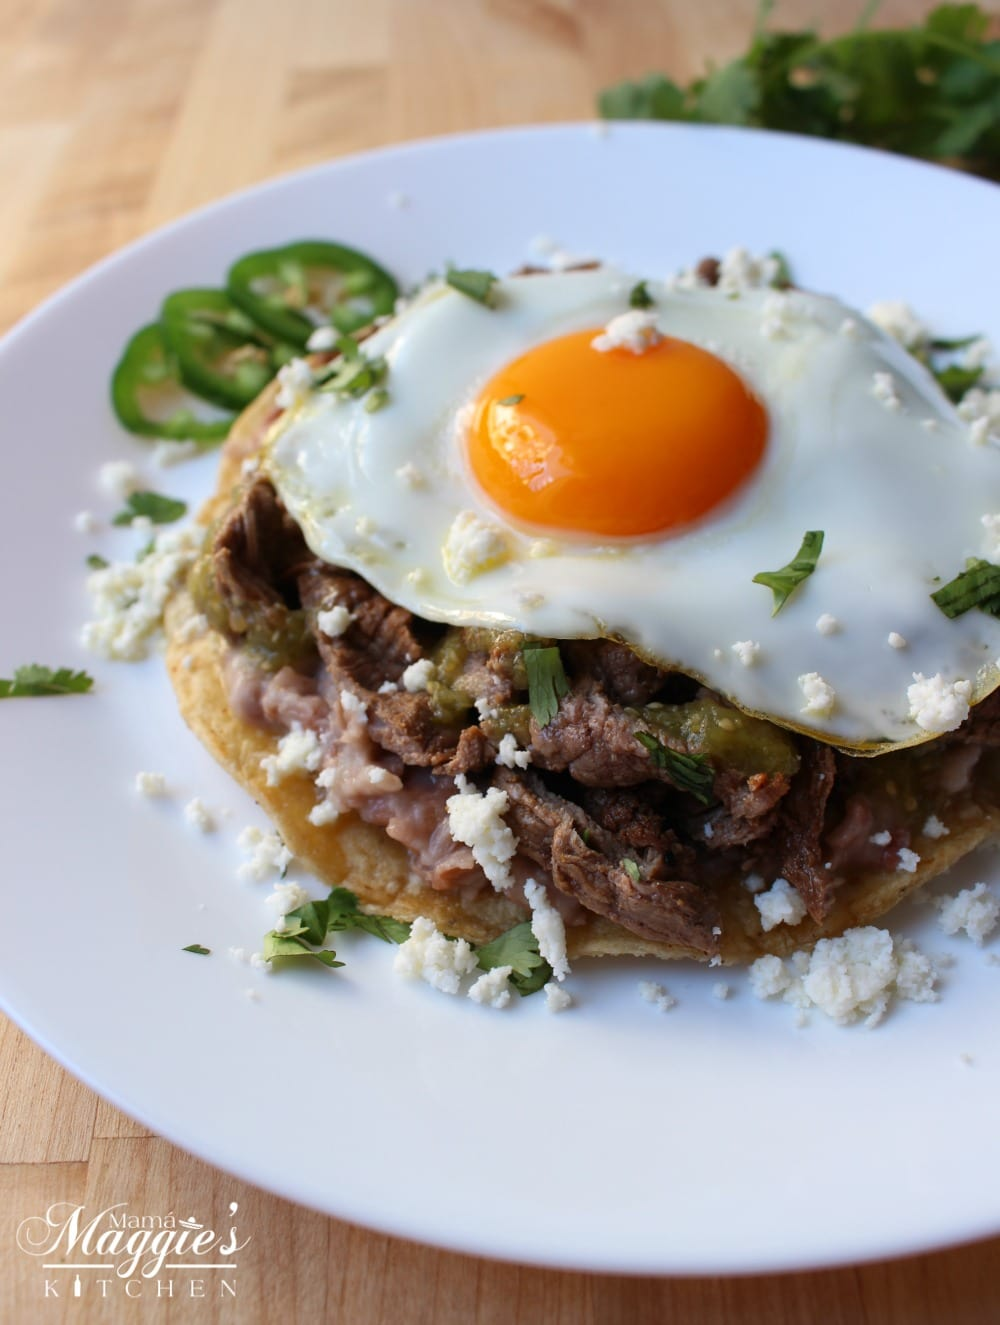 Huevos Rancheros con Bistec, Steak Huevos Rancheros, on a white plate sprinkled with queso fresco and chopped cilantro.